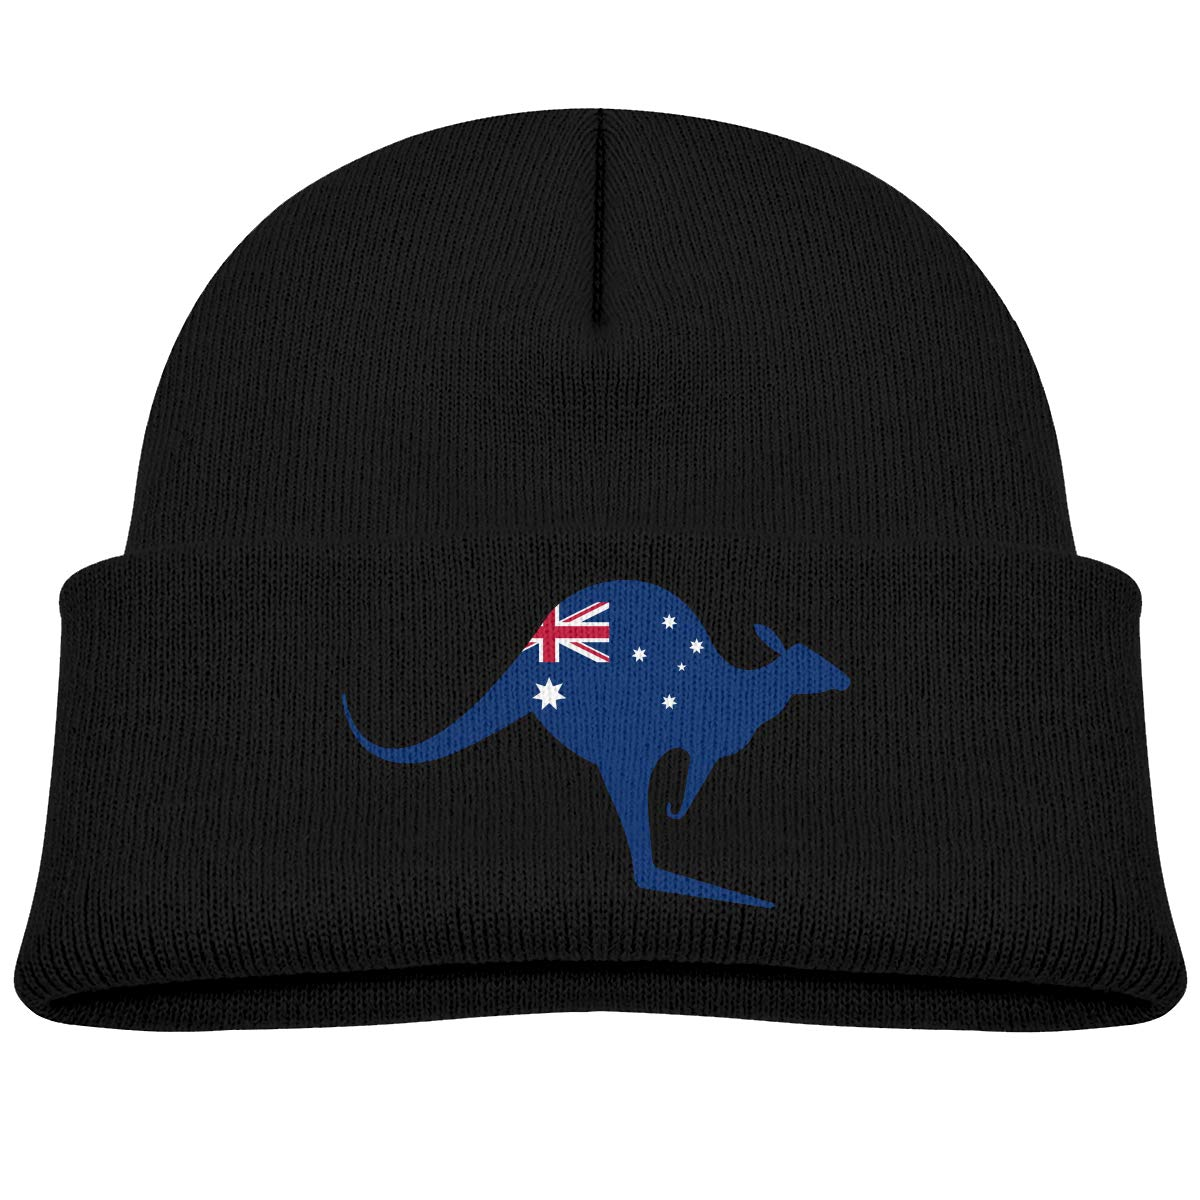 b00cb43a3bcc10 Amazon.com: Australian Flag Kangaroo Kids Beanie Hat Classic Winter Hats  Skull Cap Knitted Hat: Clothing